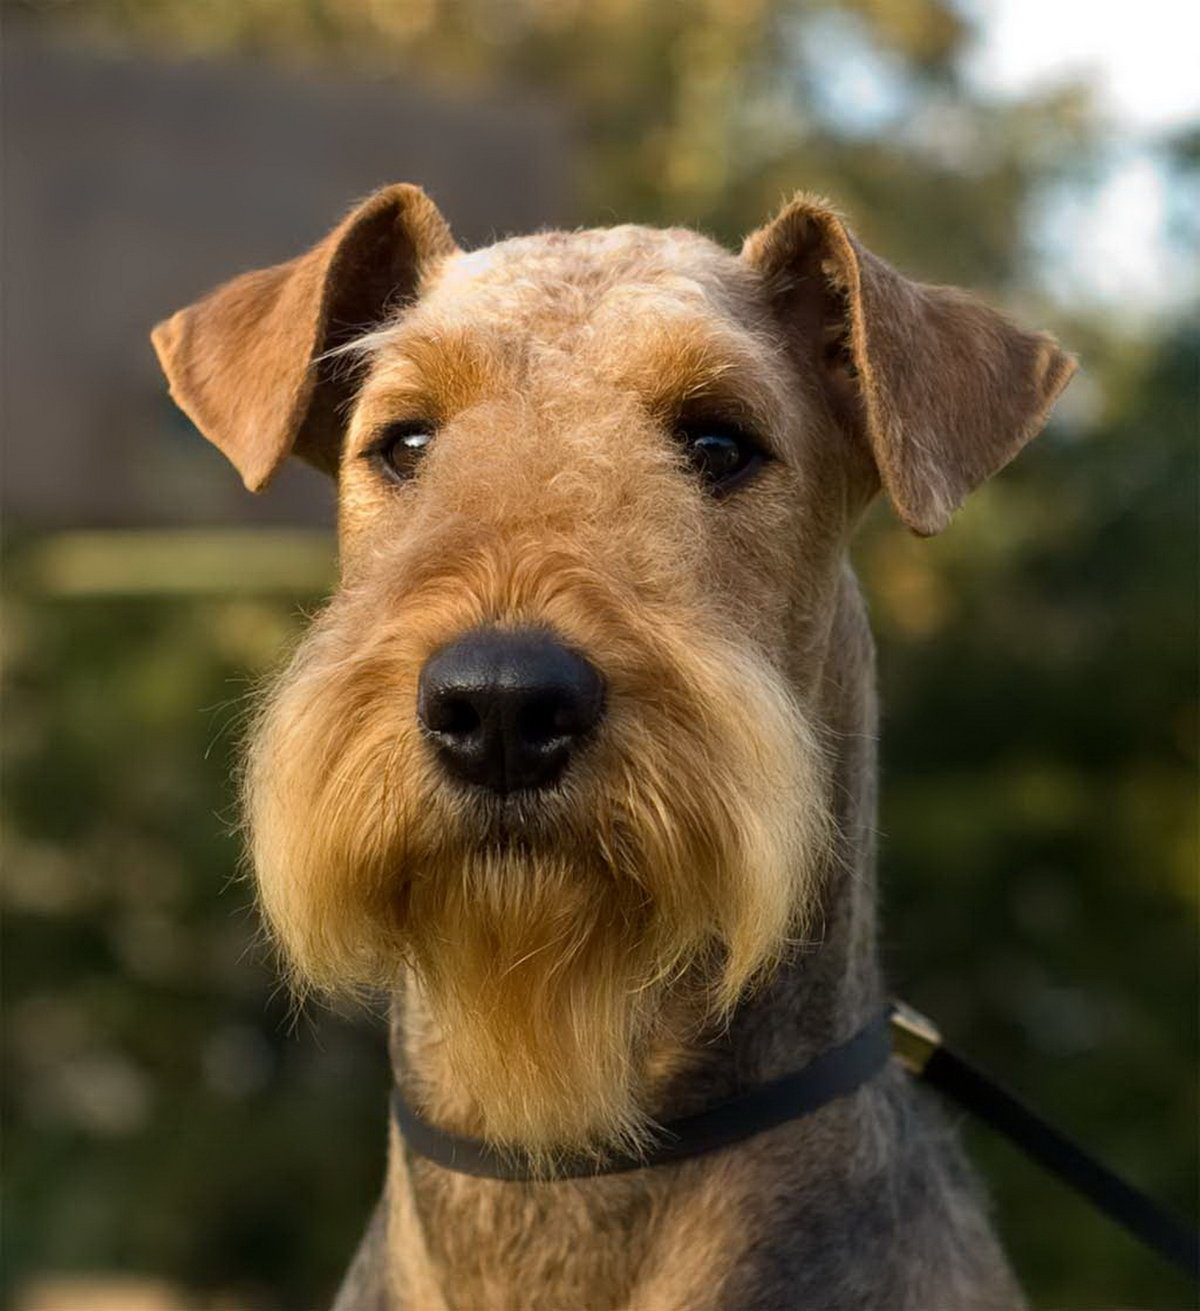 Airedale Terrier Club of America Rescue and Adoption Committee Dedicated to Airedale Terrier rescue and adoption